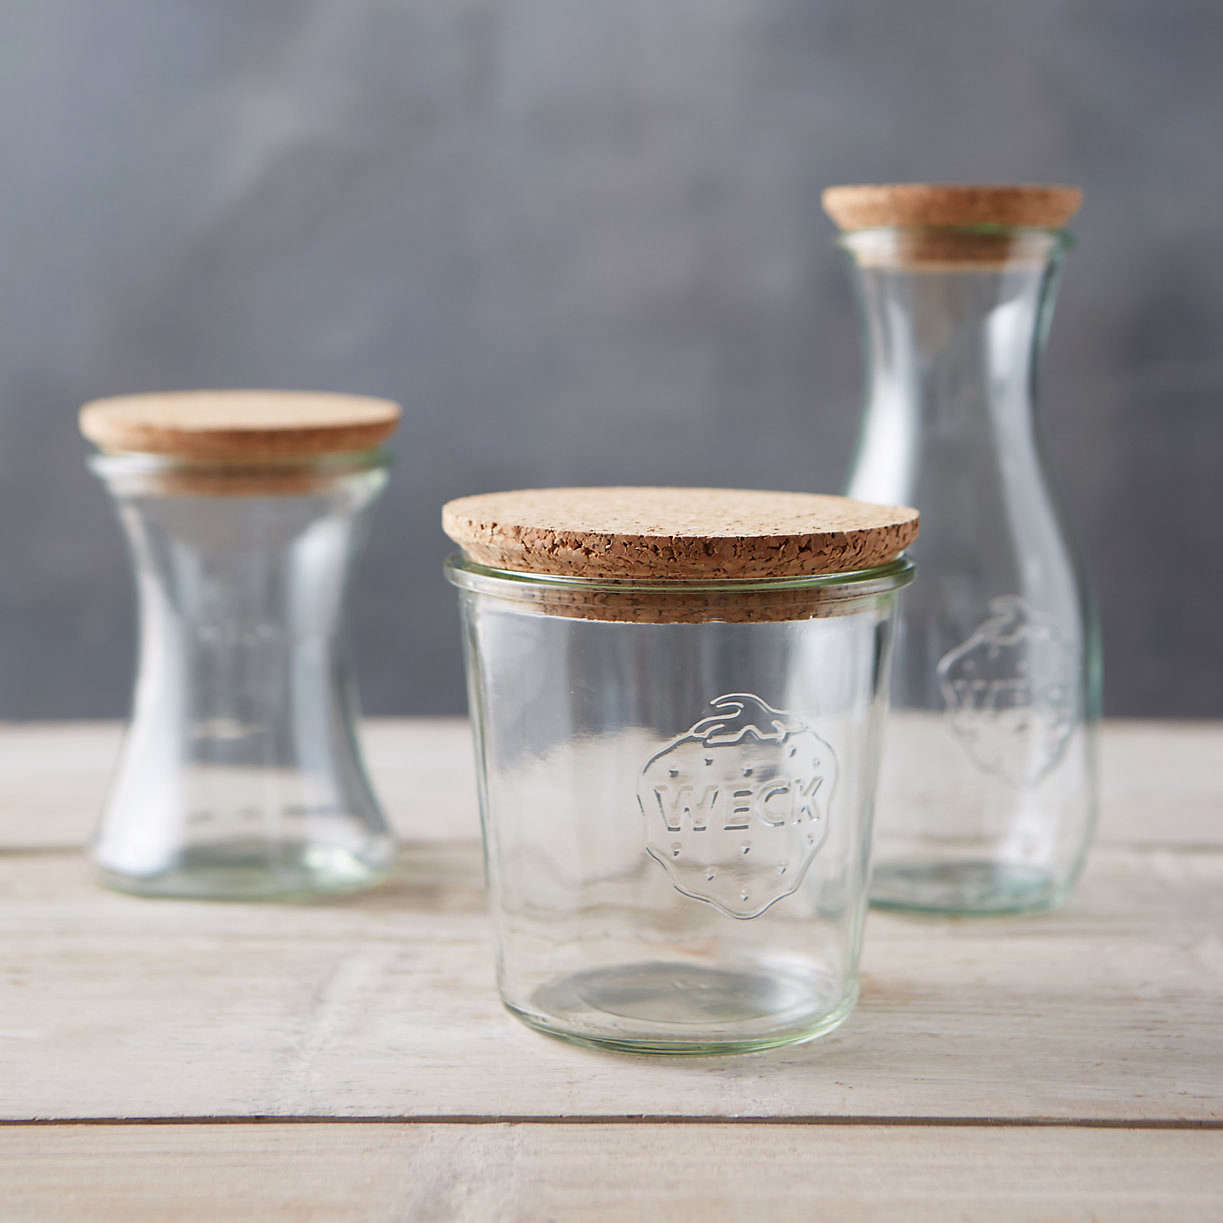 Cork Lids for Weck Jars at Terrain